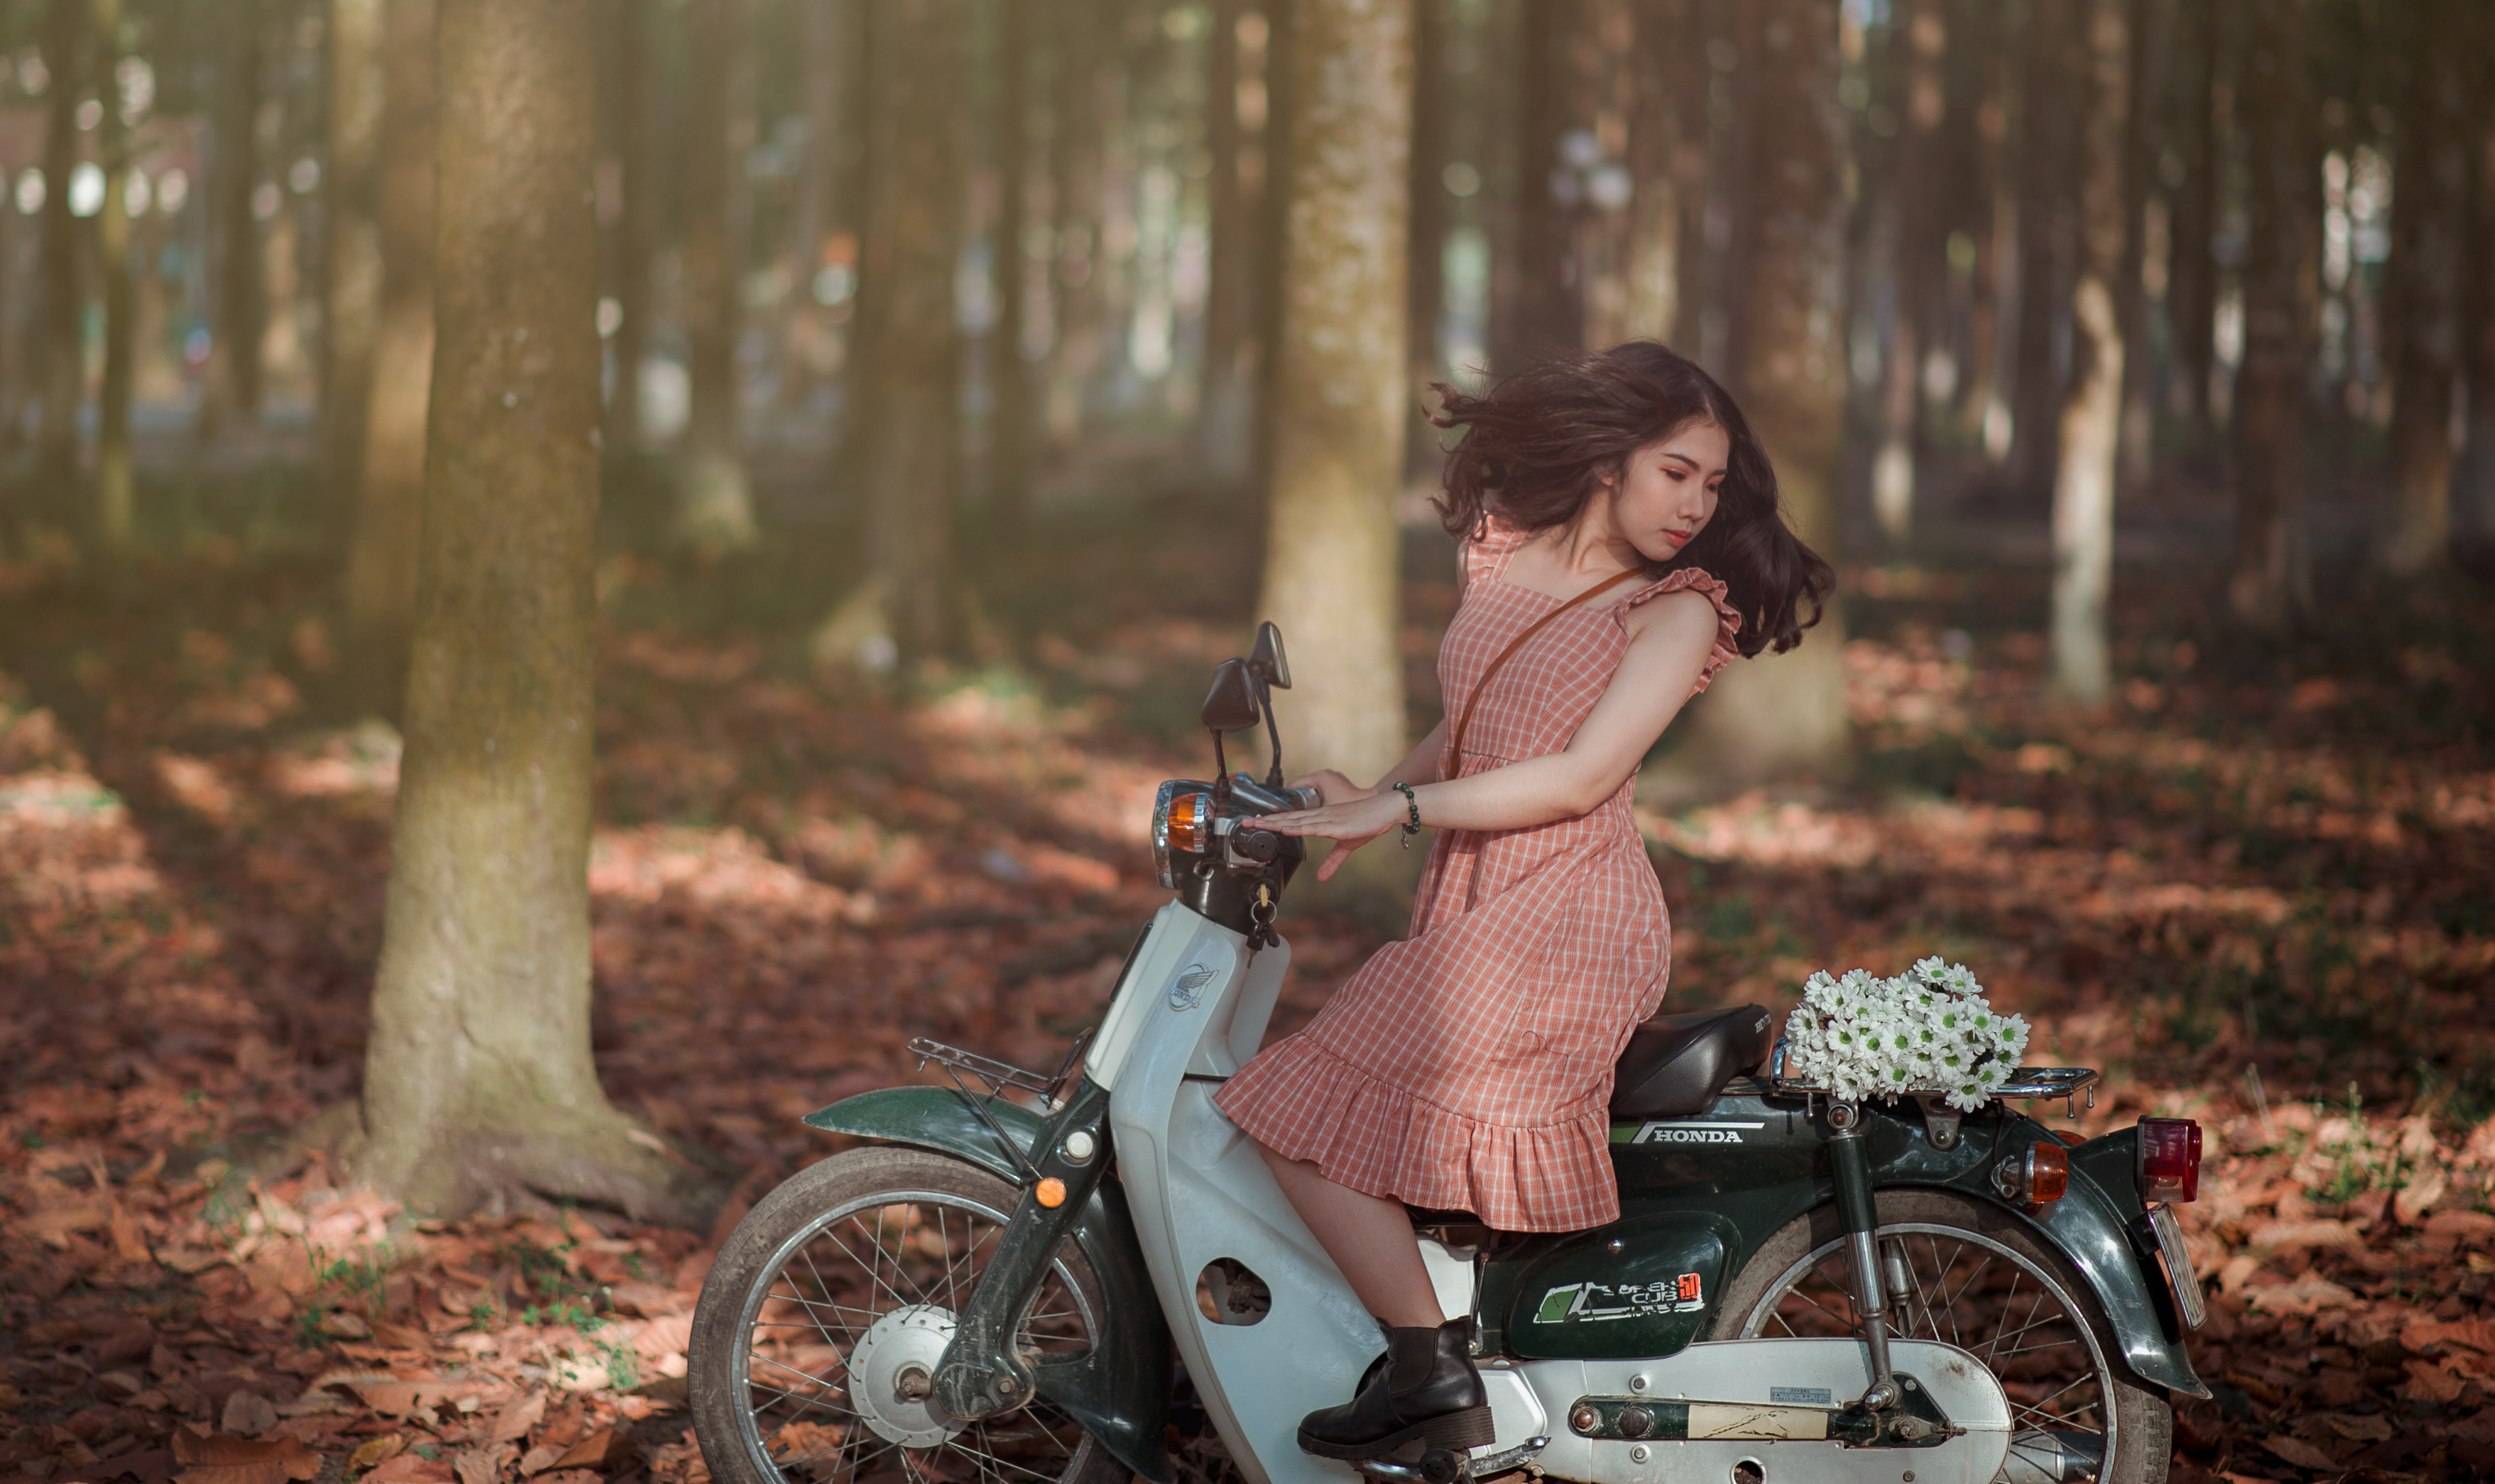 Woman Riding Black and White Motor Scooter in Jungle, Beautiful flowers, Person, Woman, Wheels, HQ Photo